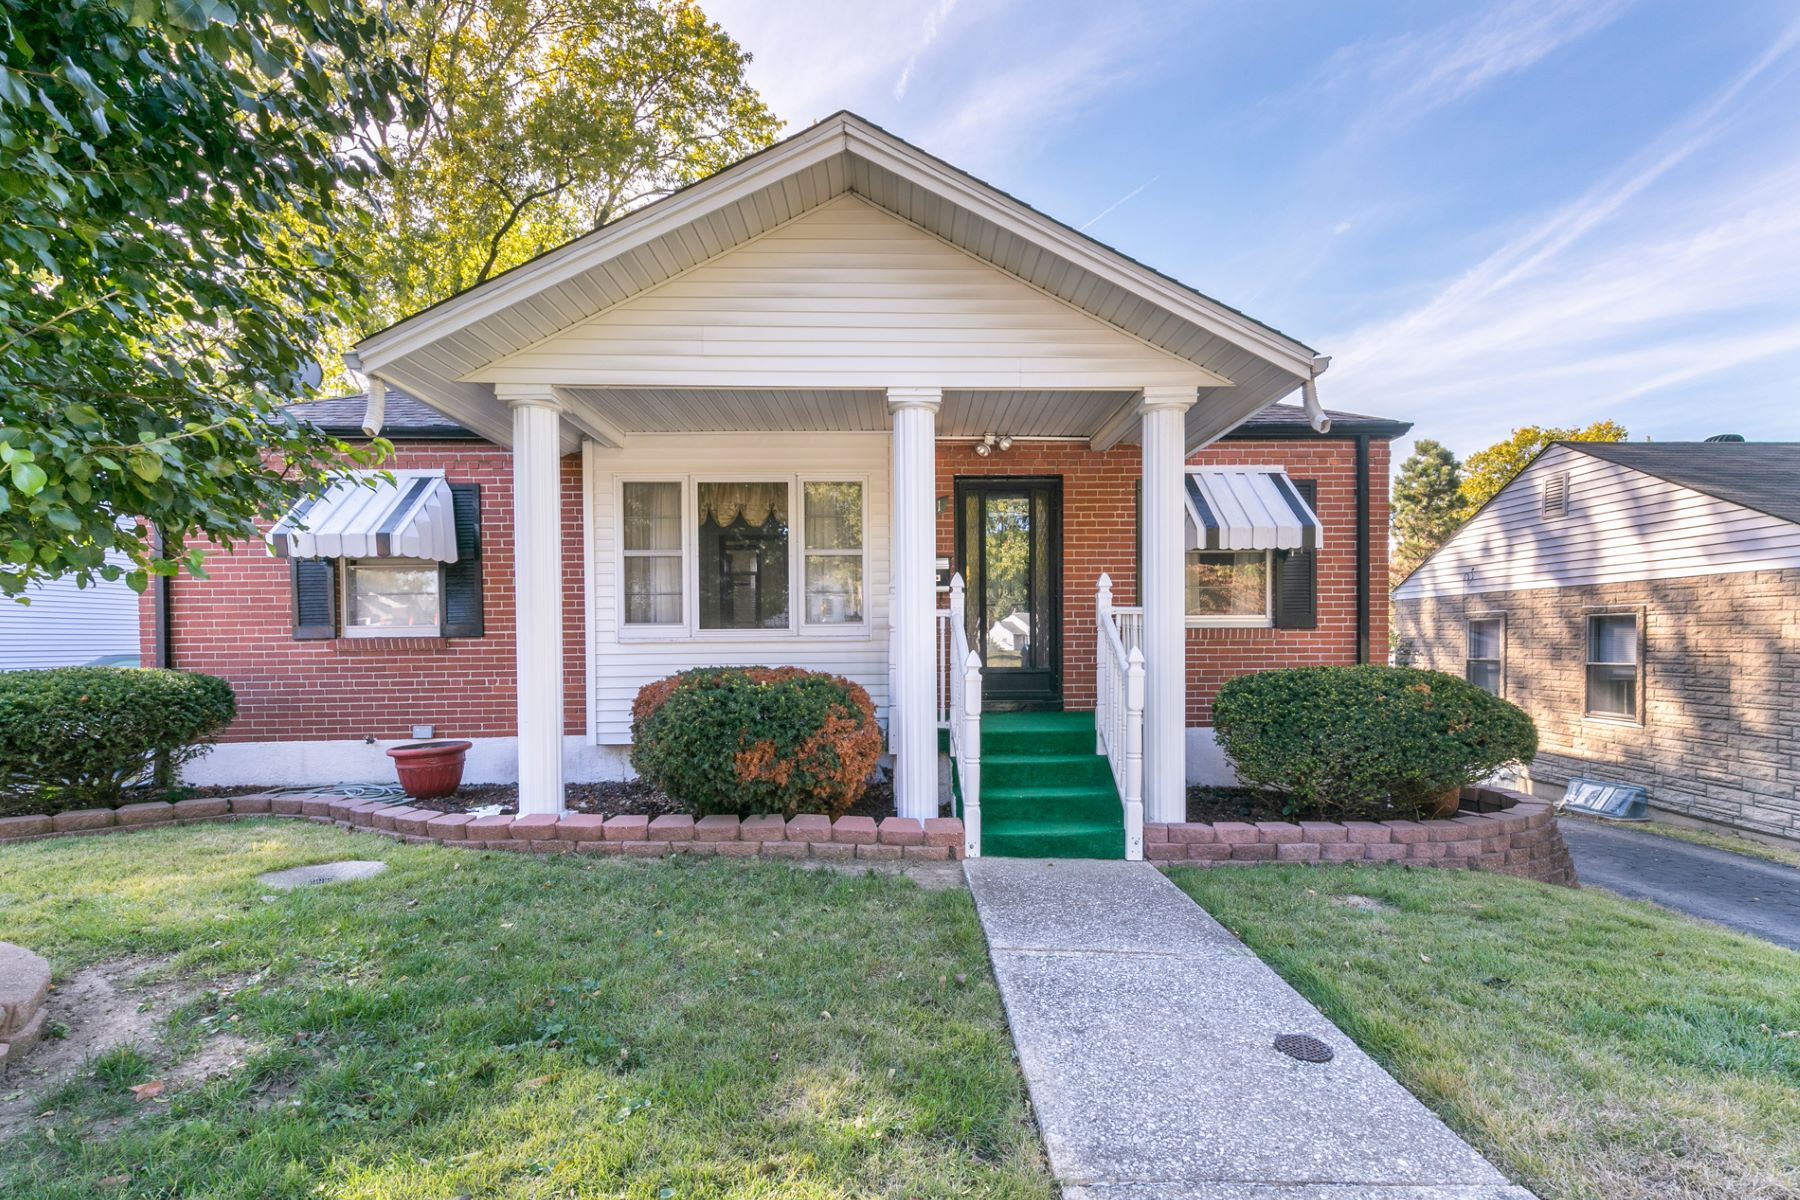 Single Family Home for Sale at Ashby Road 3651 Ashby Road St. Ann, Missouri 63074 United States